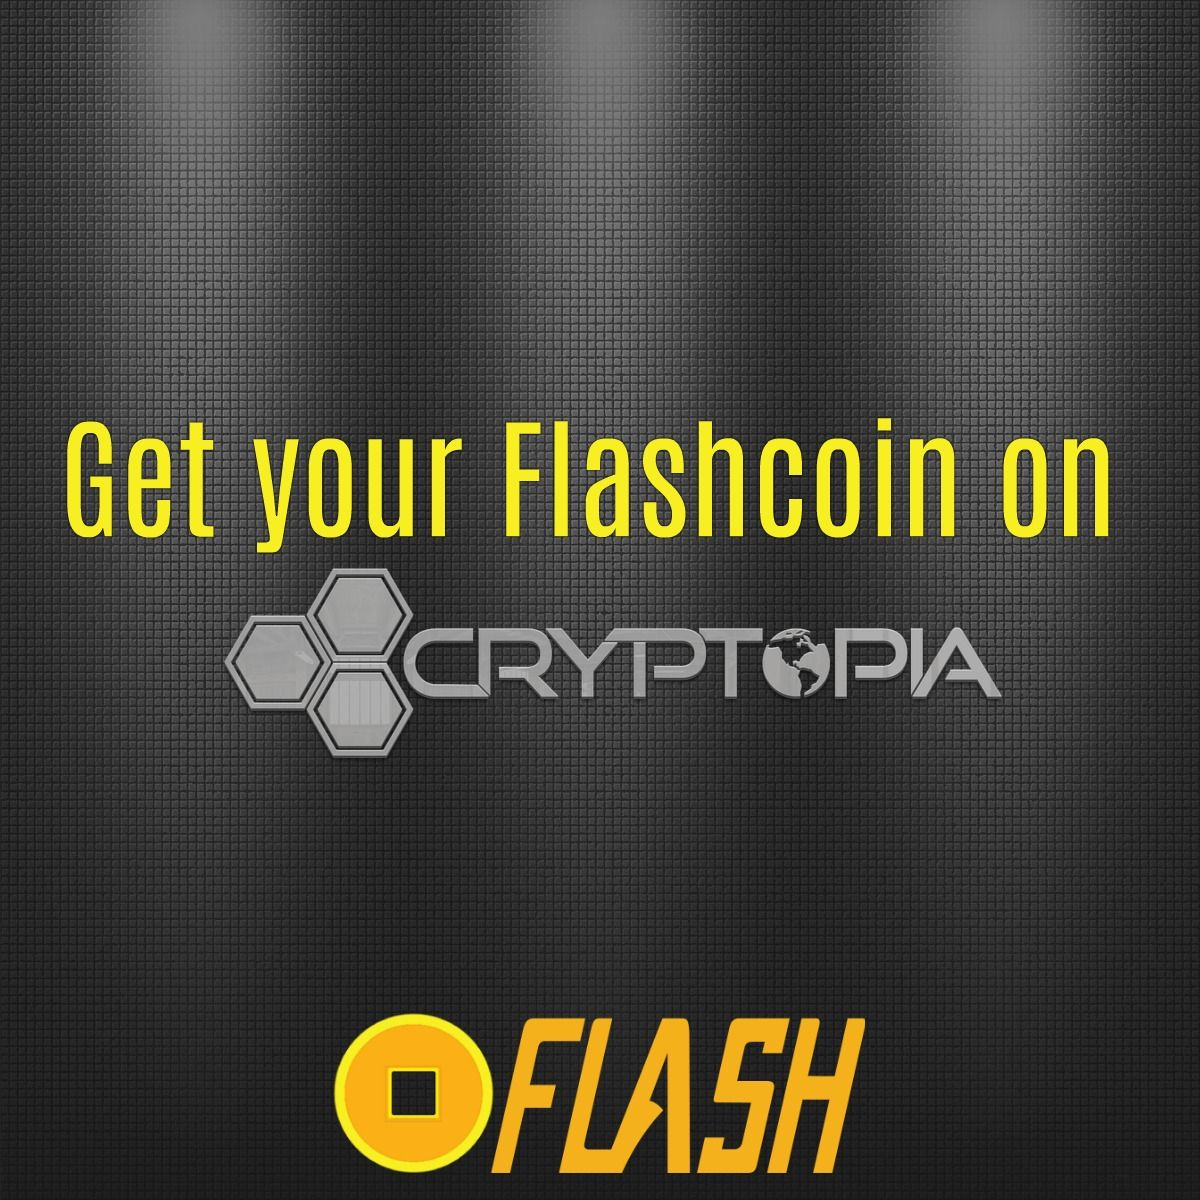 Get your wallet httpsflashcoin cryptocurrency money get your wallet httpsflashcoin cryptocurrency money ccuart Images